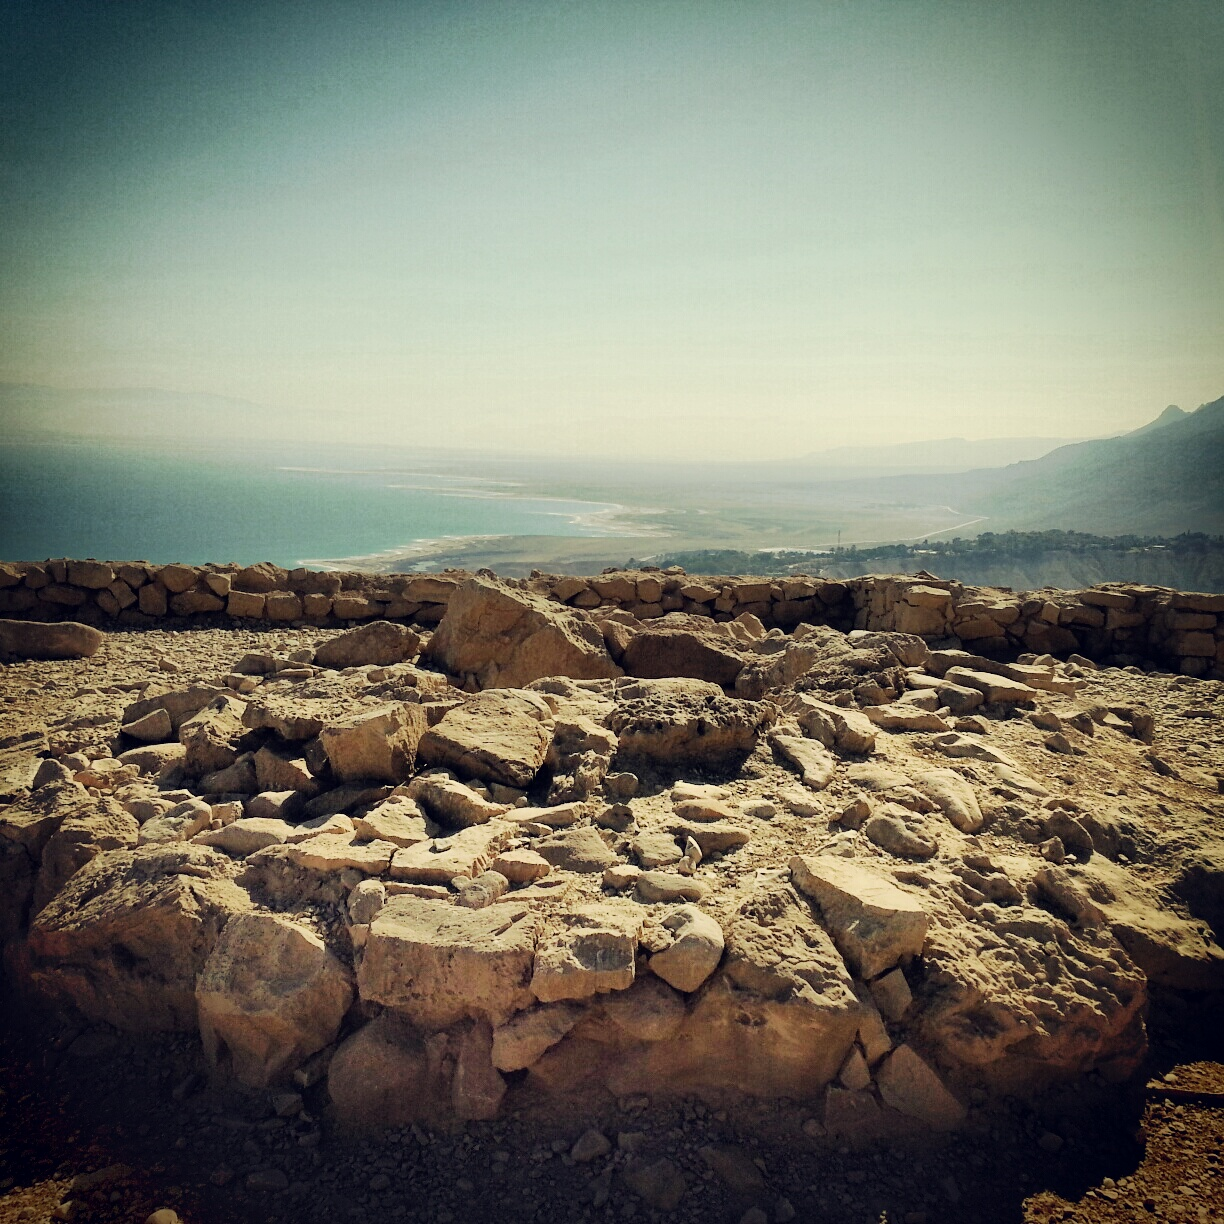 Chalcolithic period temple at Ein Gedi